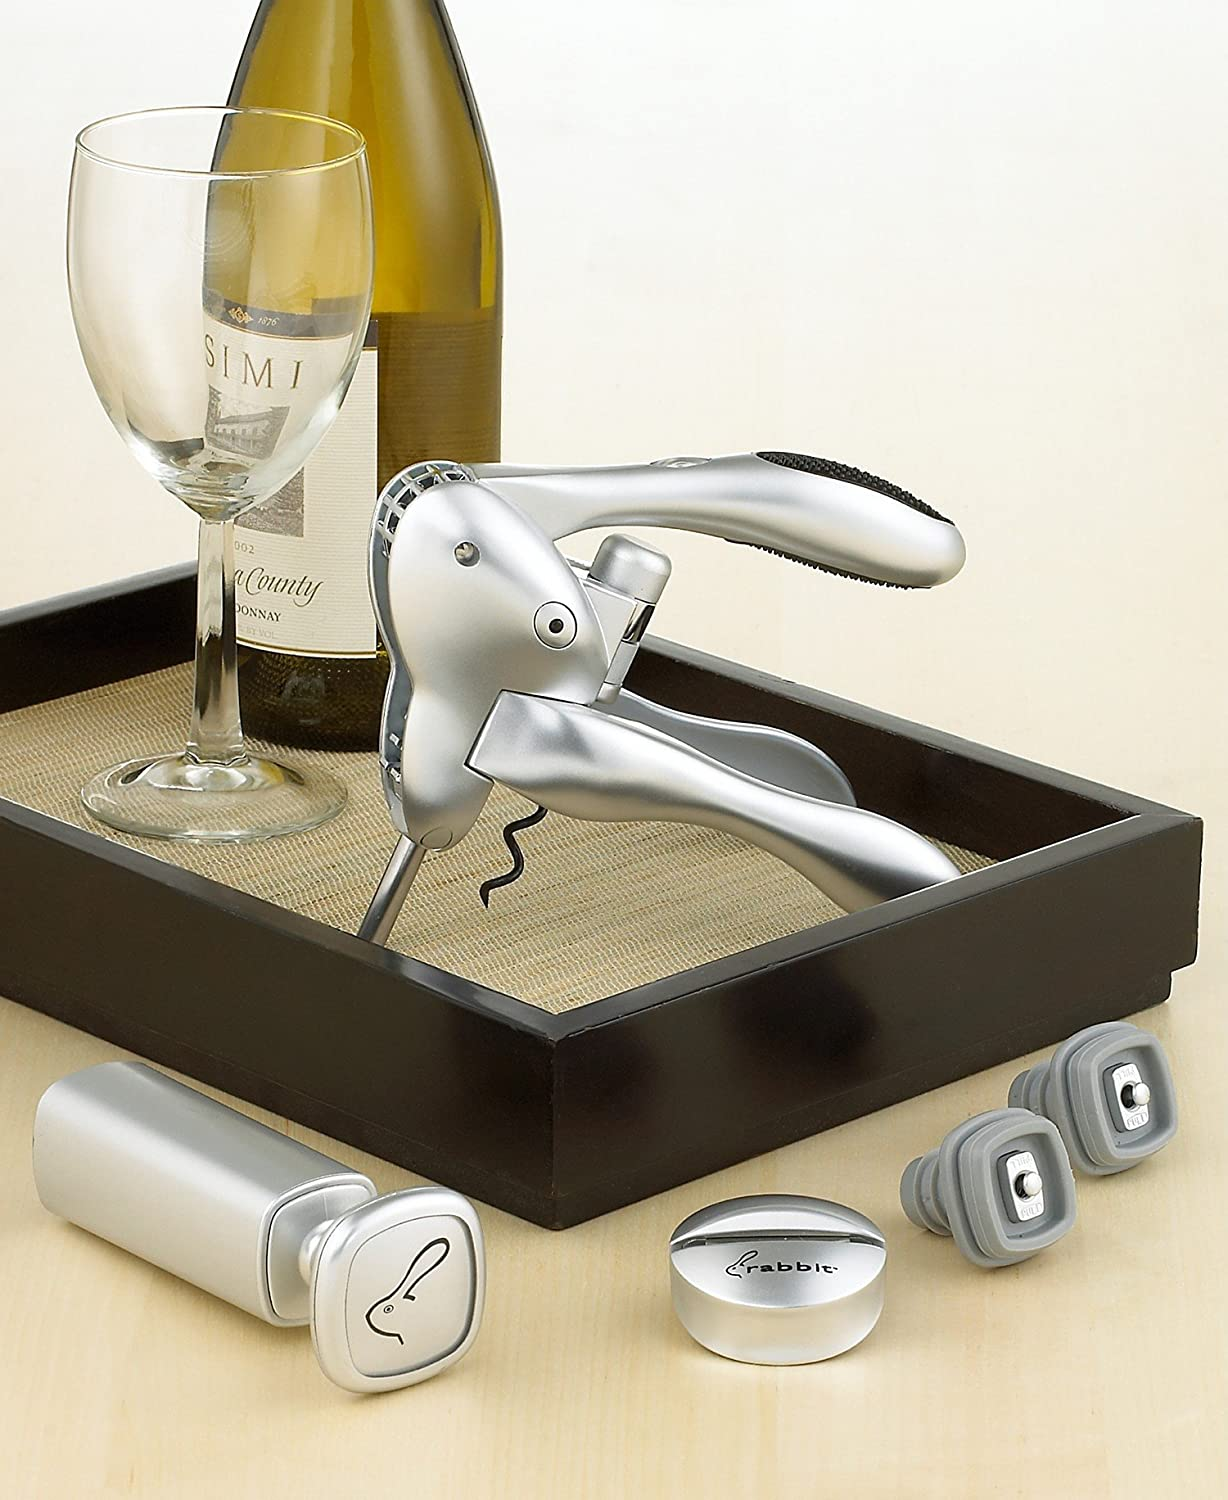 Rabbit Corkscrew and Wine Preserver 6-Piece Set by Metrokane